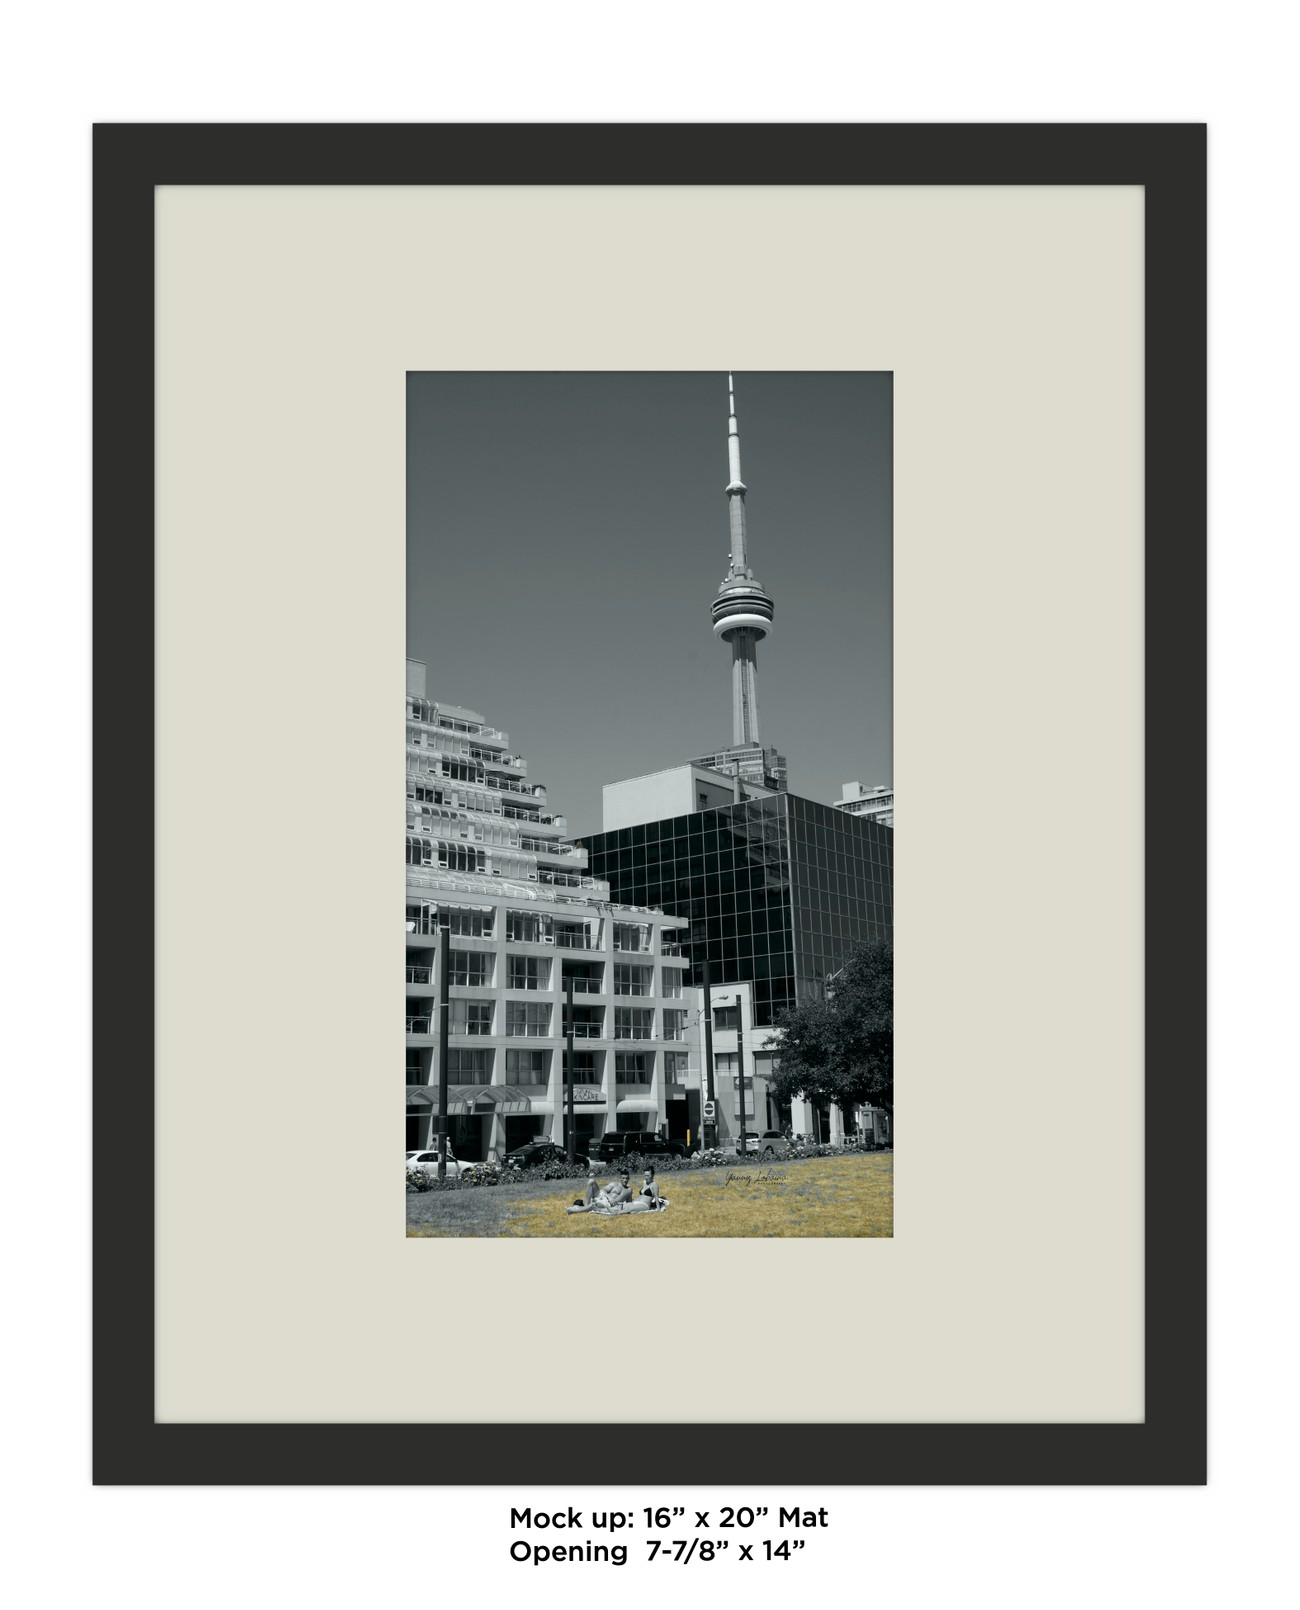 SUMMER IN TORONTO Mat_Mockup  ONGOING SerieS Alive_Upside down By Yannis Lobaina